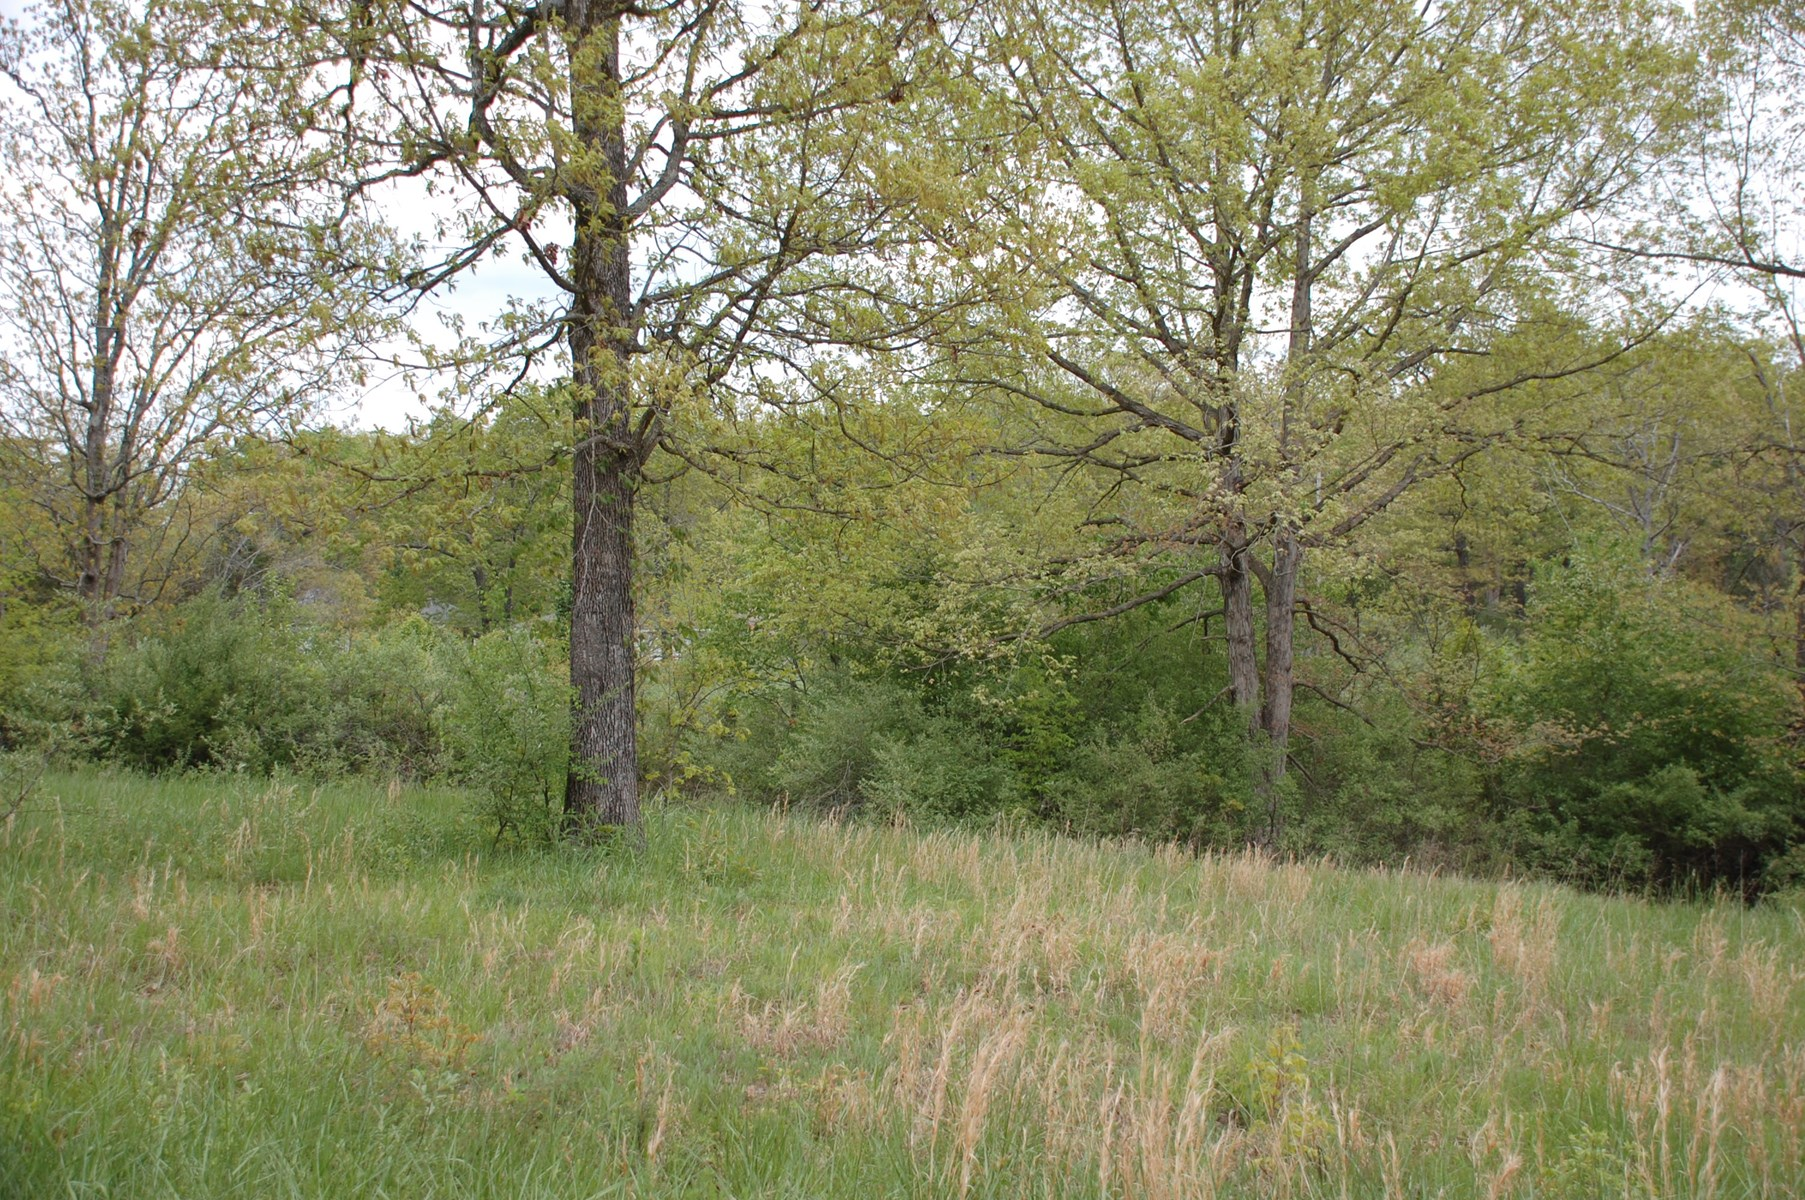 FOR SALE IN WEST PLAINS, MO - QUAIL RUN RESIDENTIAL LOTS